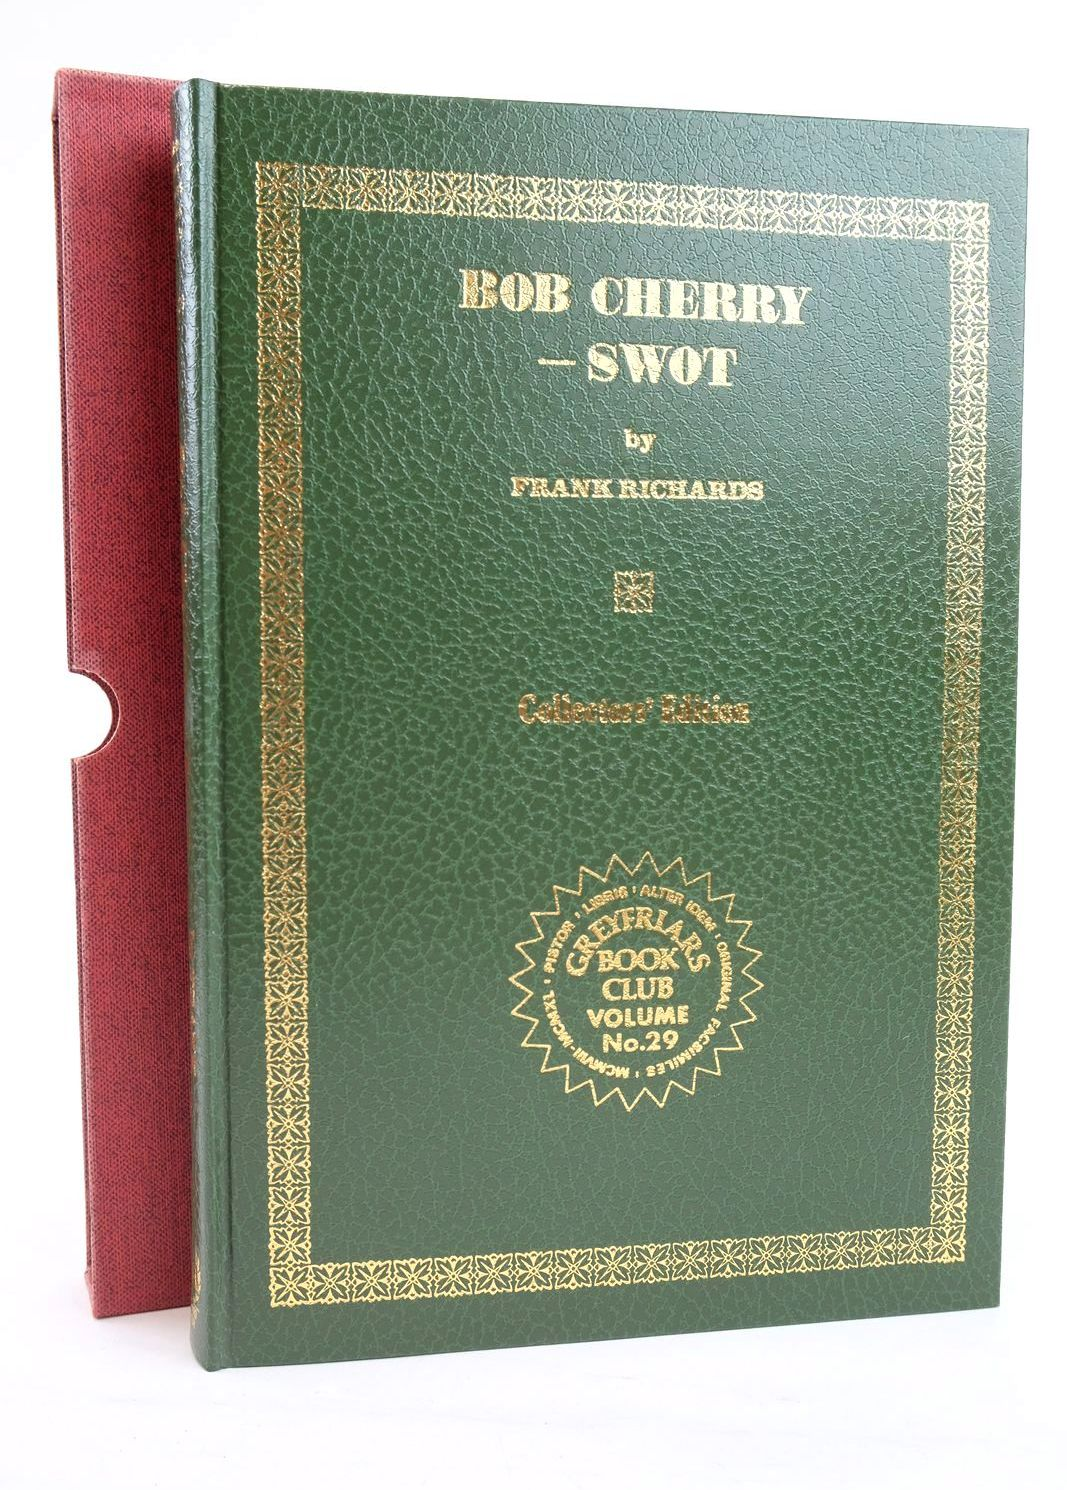 Photo of BOB CHERRY - SWOT written by Richards, Frank published by Howard Baker (STOCK CODE: 1319791)  for sale by Stella & Rose's Books